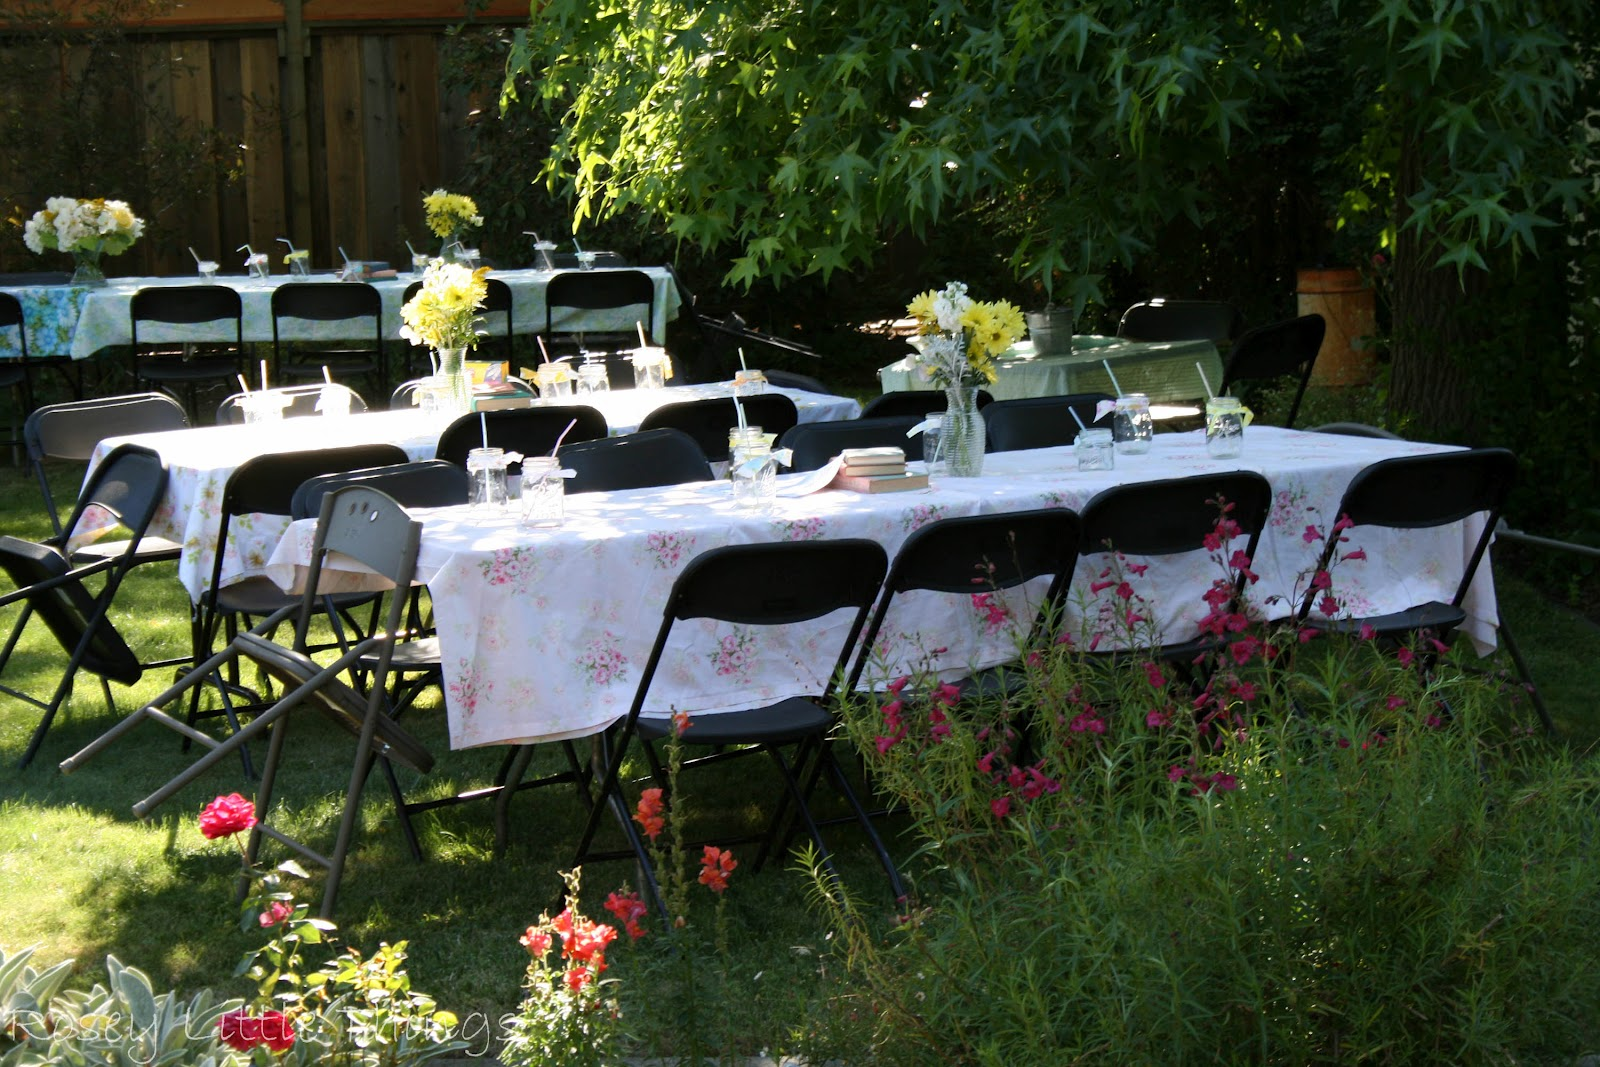 They Rented Tables And Chairs I Used Vintage Sheets Which Have A Ton Of For The Table Cloths Brought Over All My Canning Jars Tied With